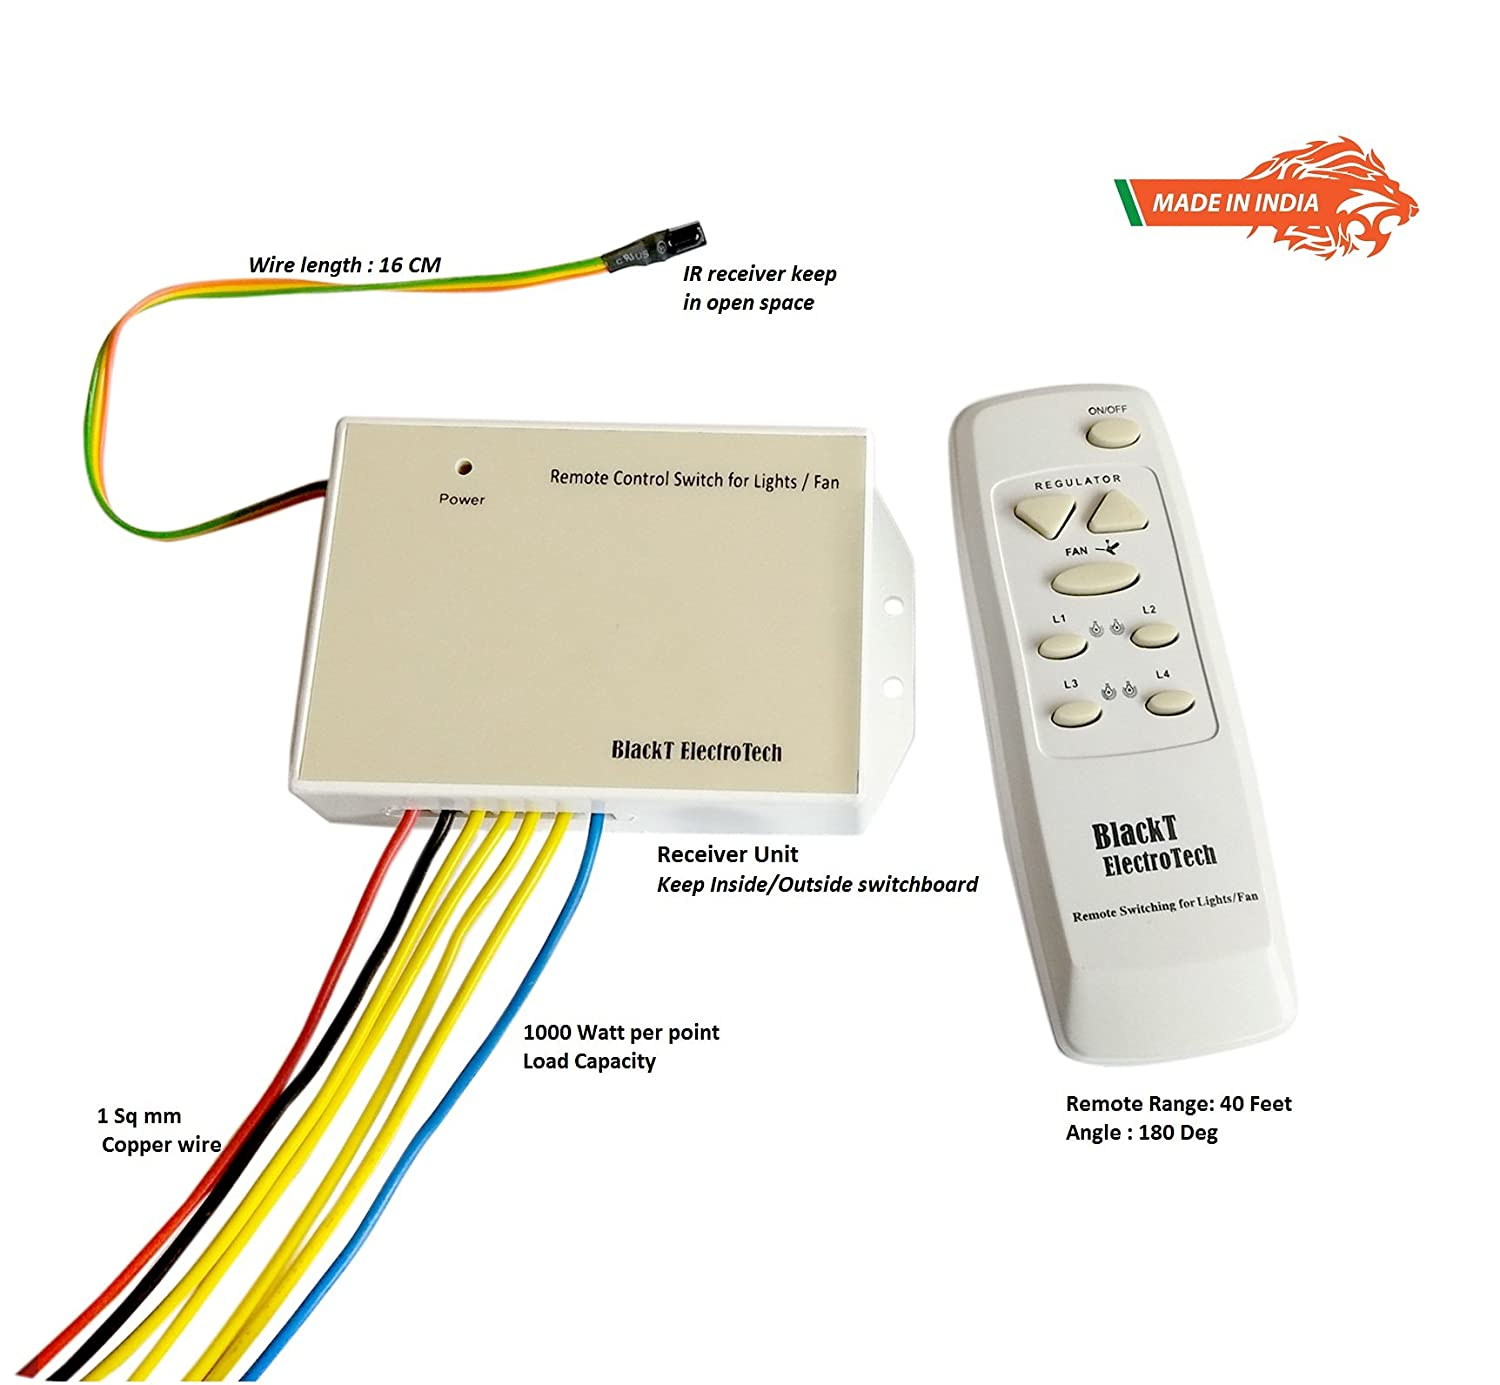 Blackt Electrotech Wireless Remote Control Switch System For 4 Fan Cycle Wiring Diagram Lights 1 With Speed Regulation Dimmer Humming Less Made In India Copper